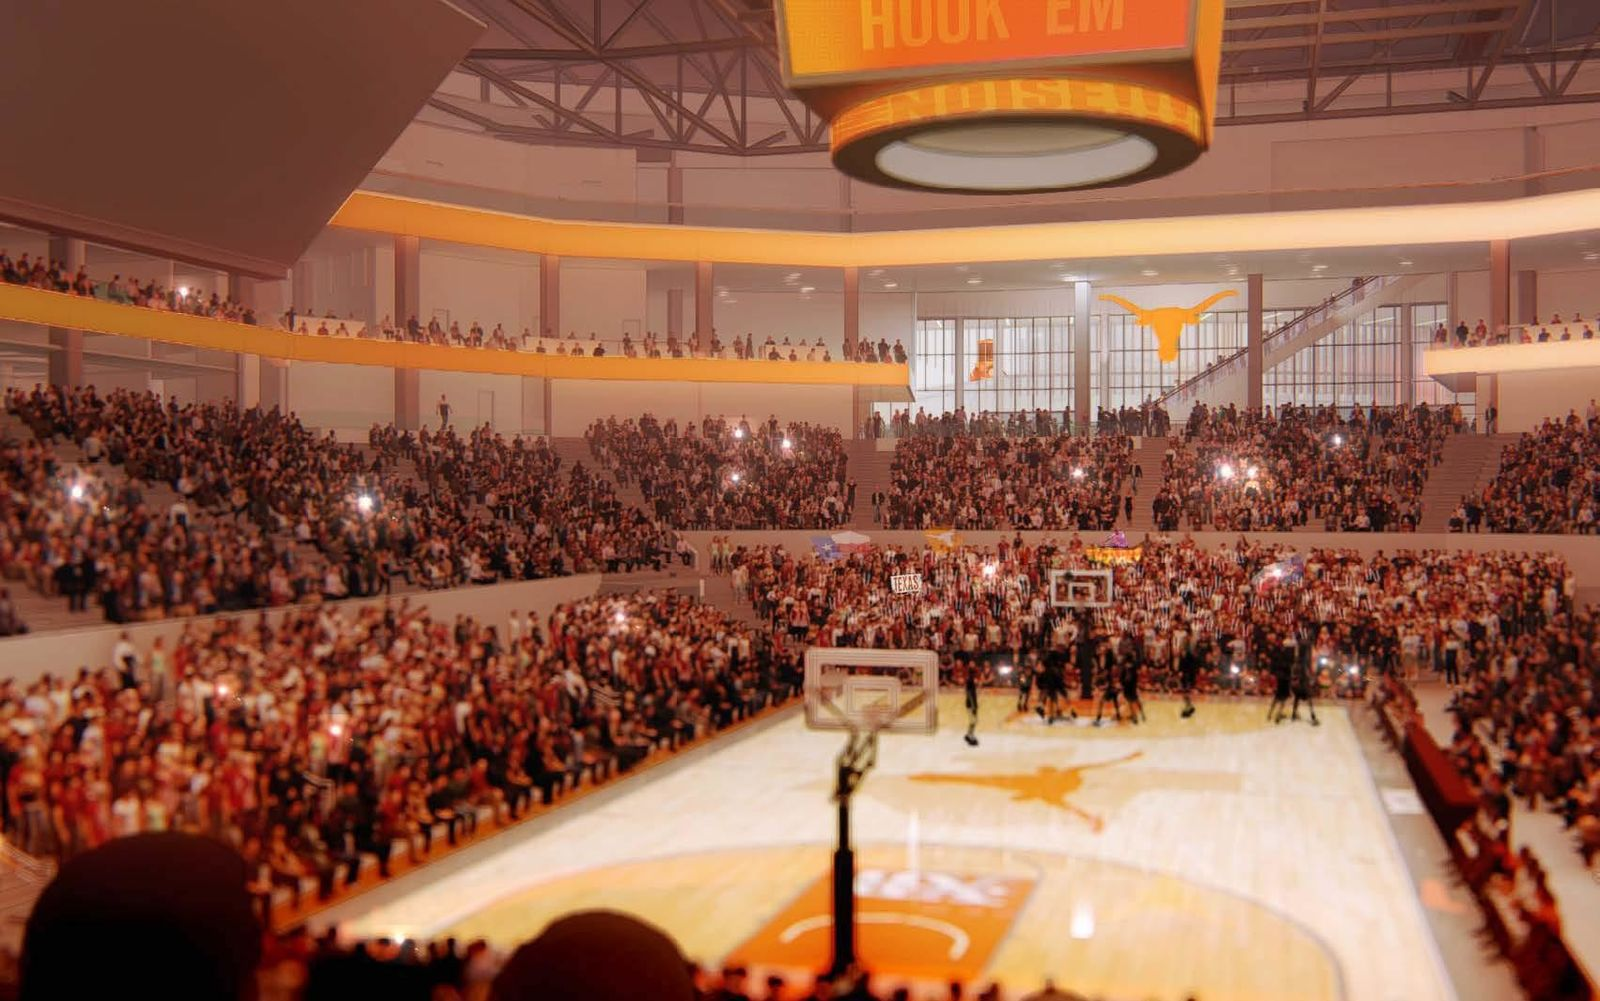 On Tuesday, the University of Texas broke ground on its new basketball arena, the Moody Center. (Renderings courtesy: UT)